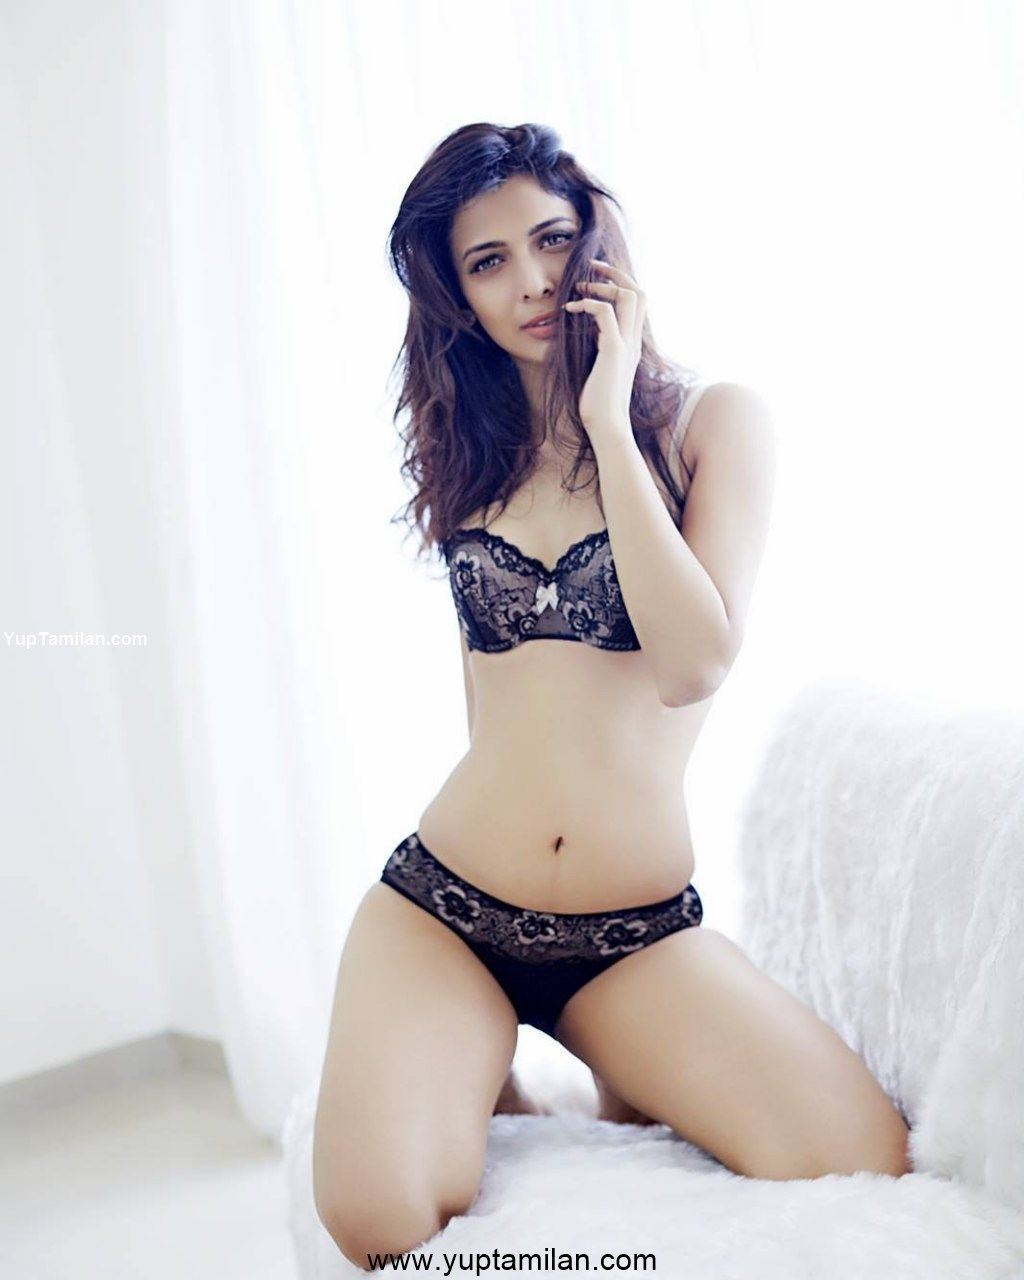 Heena Panchal Sexy Bikini Photos-Hottest Cleavage Pictures -6572